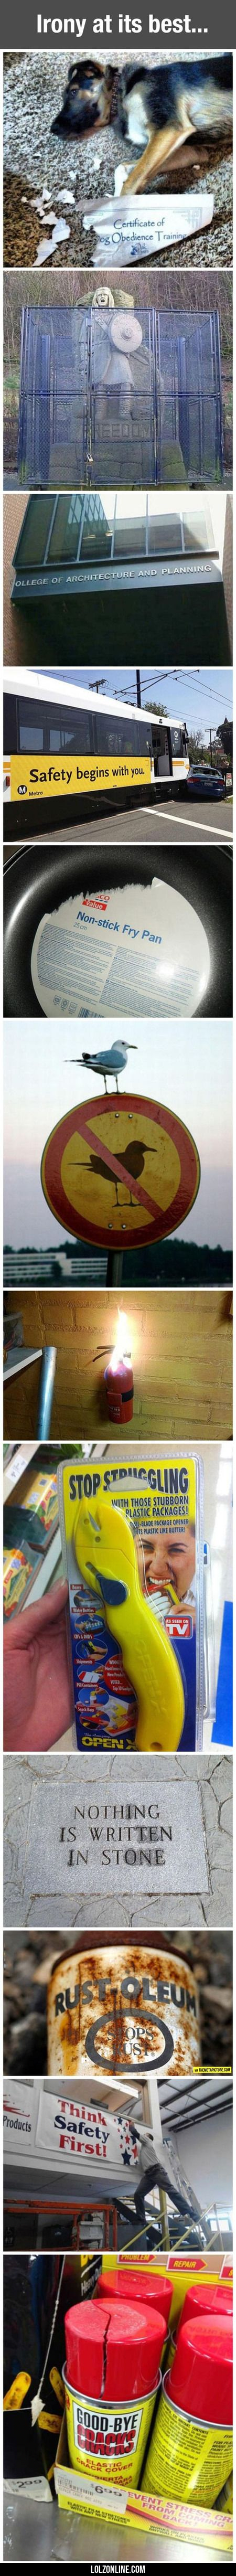 Irony At Its Best... #lol #haha #funny